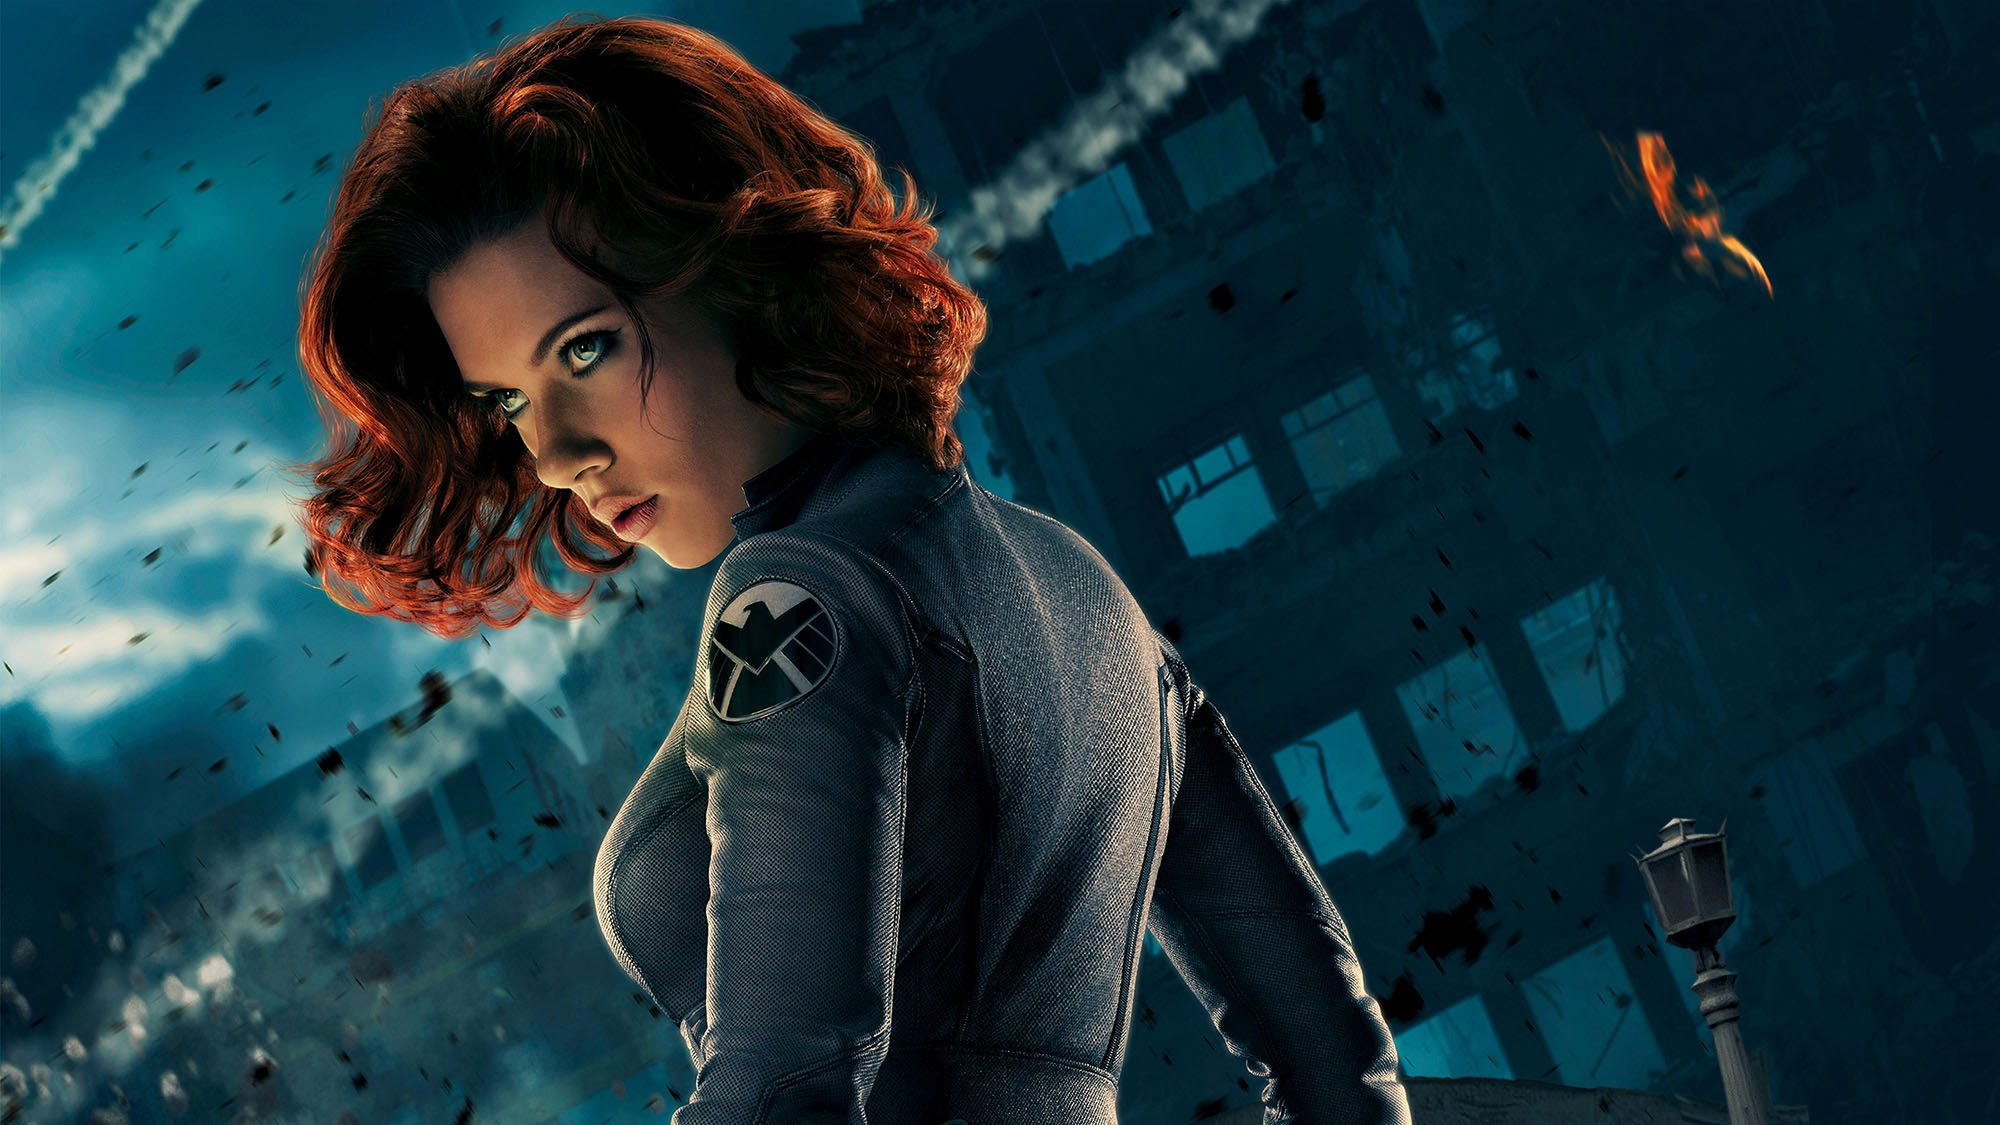 With news of a standalone 'Black Widow' film heating up again, we thought we'd take a look at all of the fierce female characters of MCU who we think deserve their own movies. Badass boss bitches, assemble!